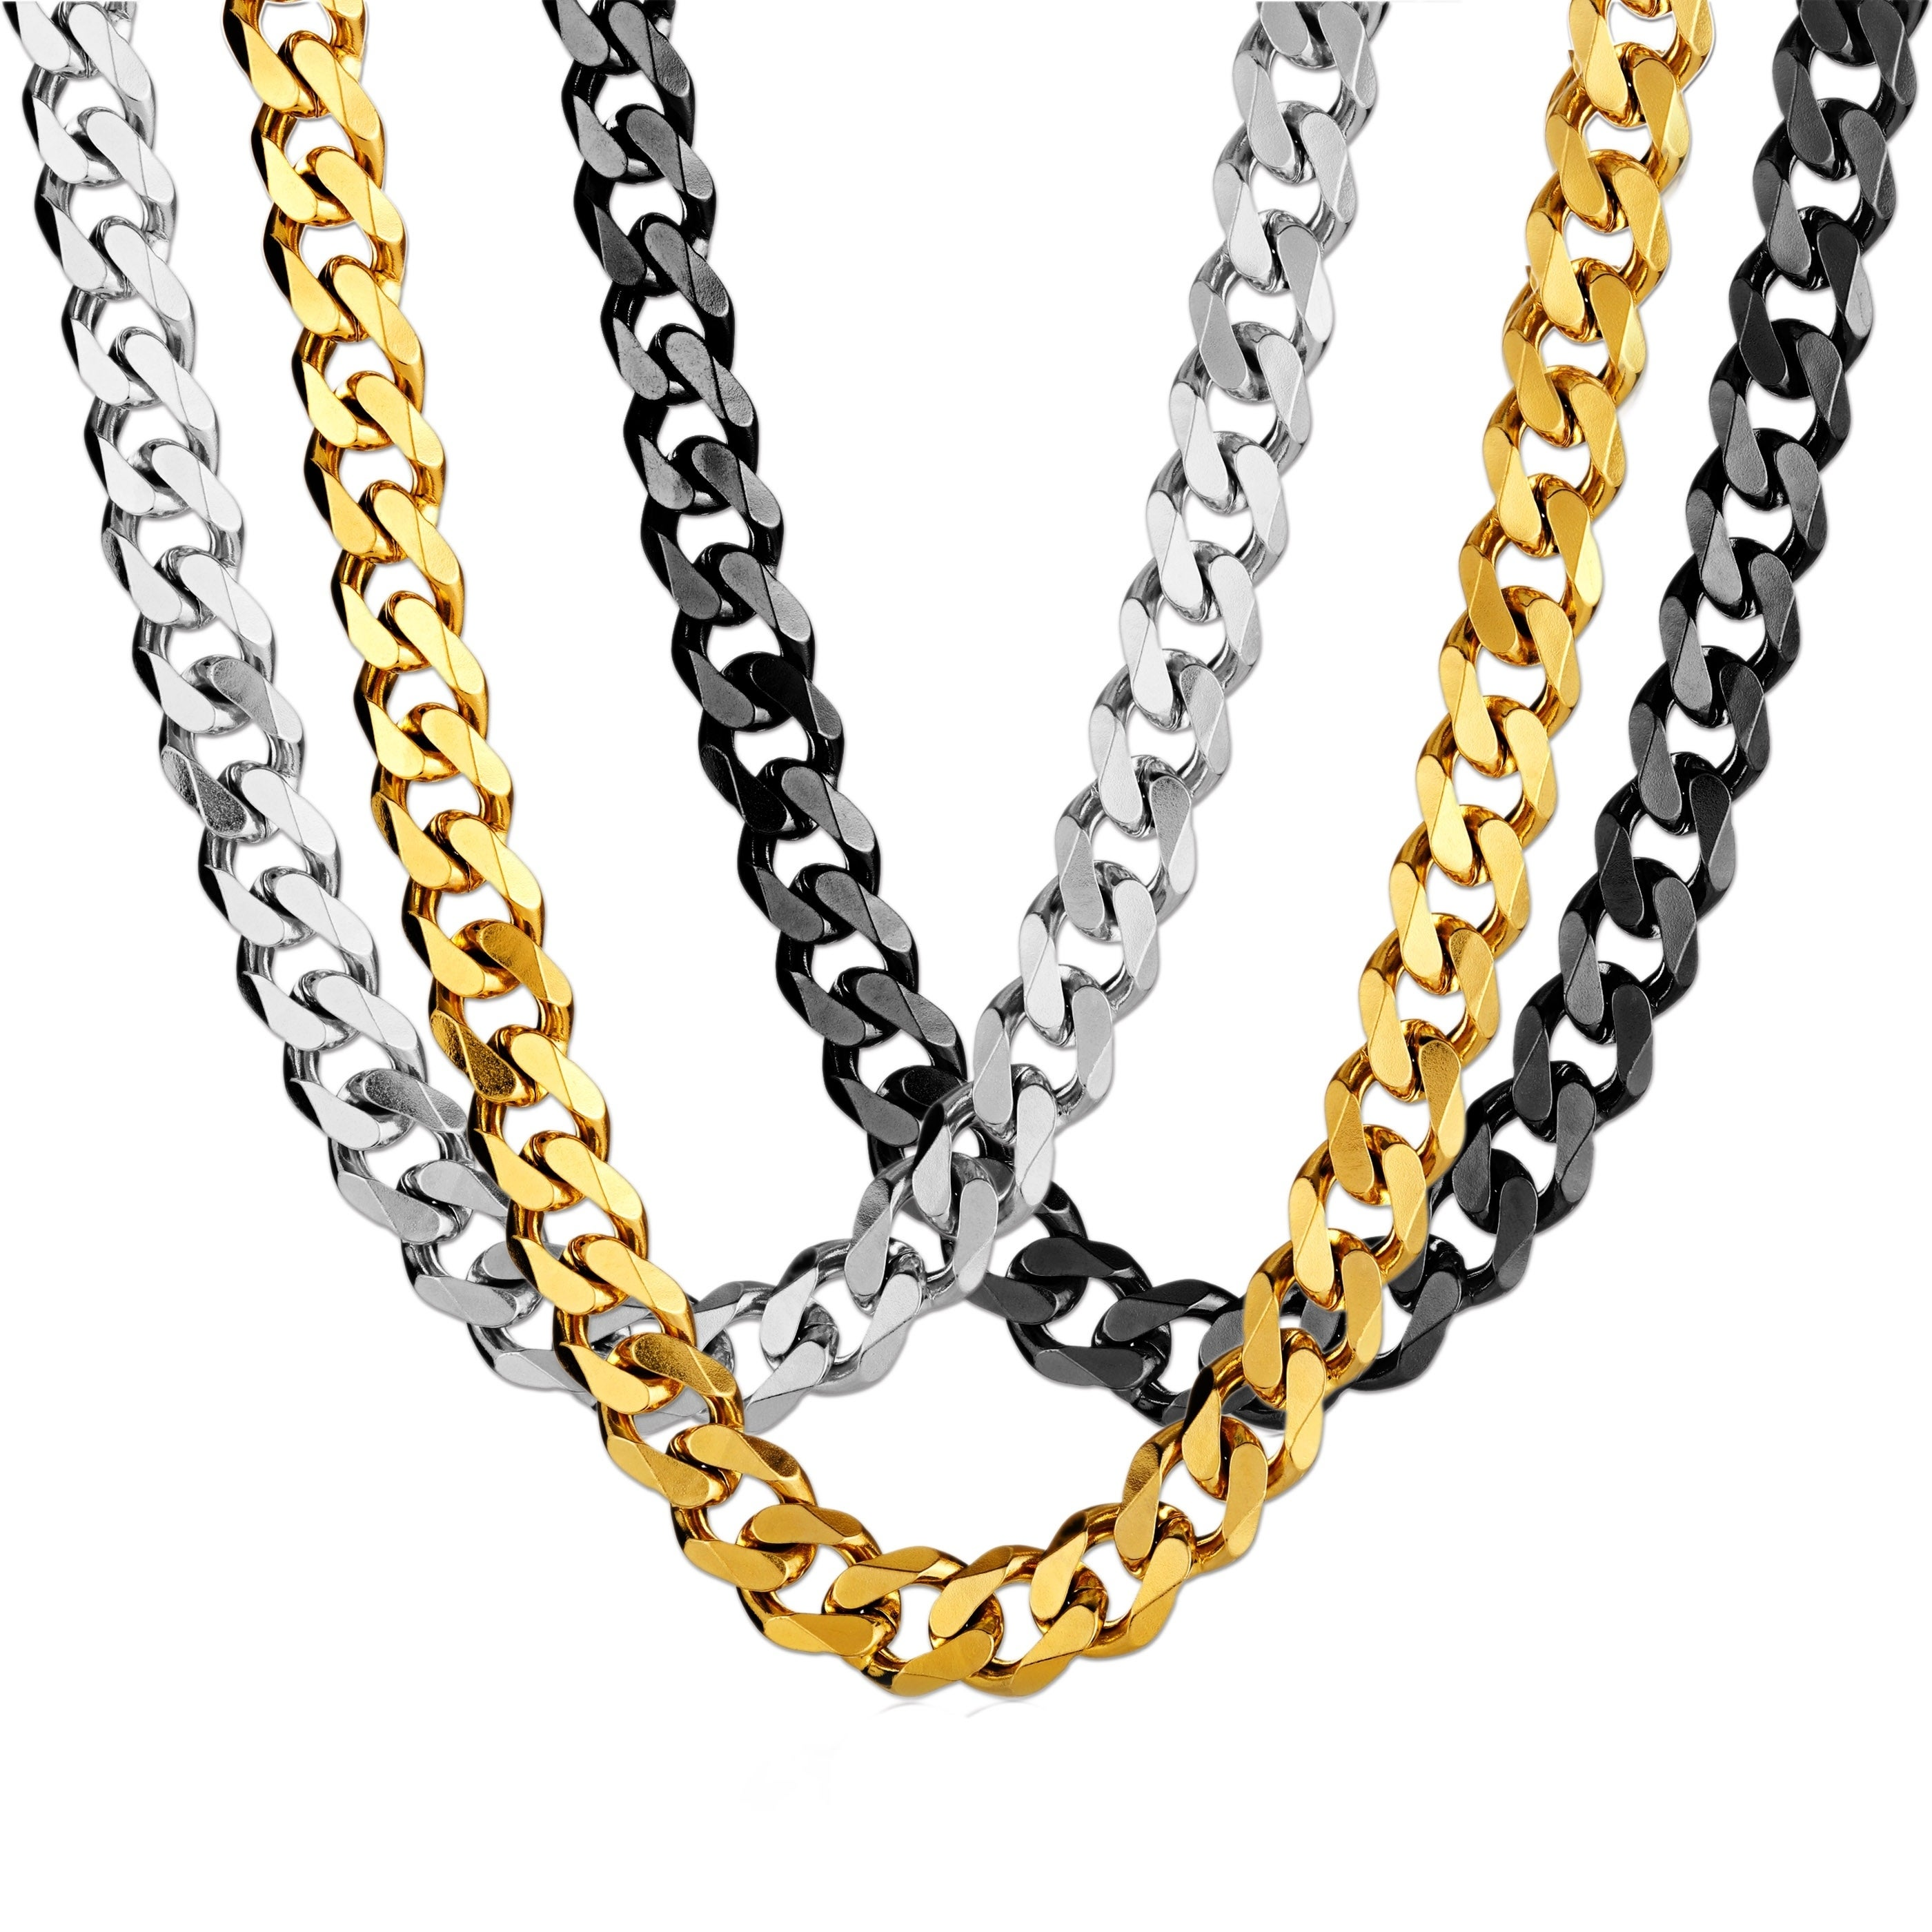 95ef9d7bbf75b Stainless Steel Cuban Curb Chain Necklace (14mm Wide) - 24 Inches